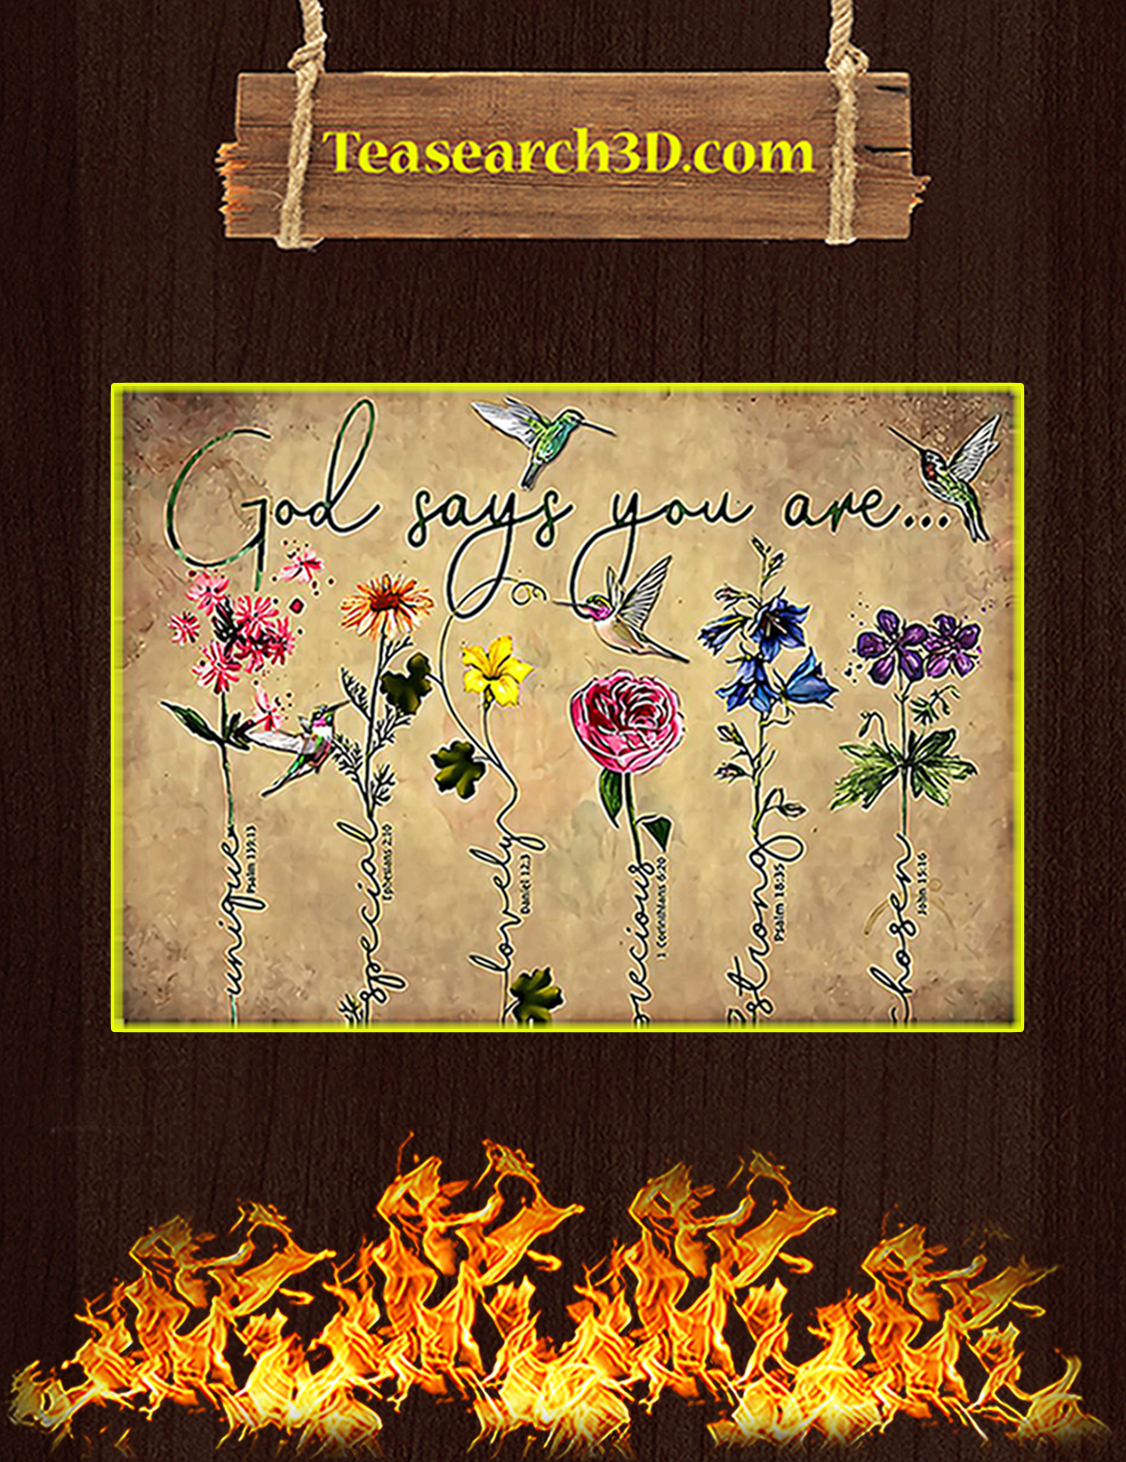 Hummingbird flower God says you are poster A3